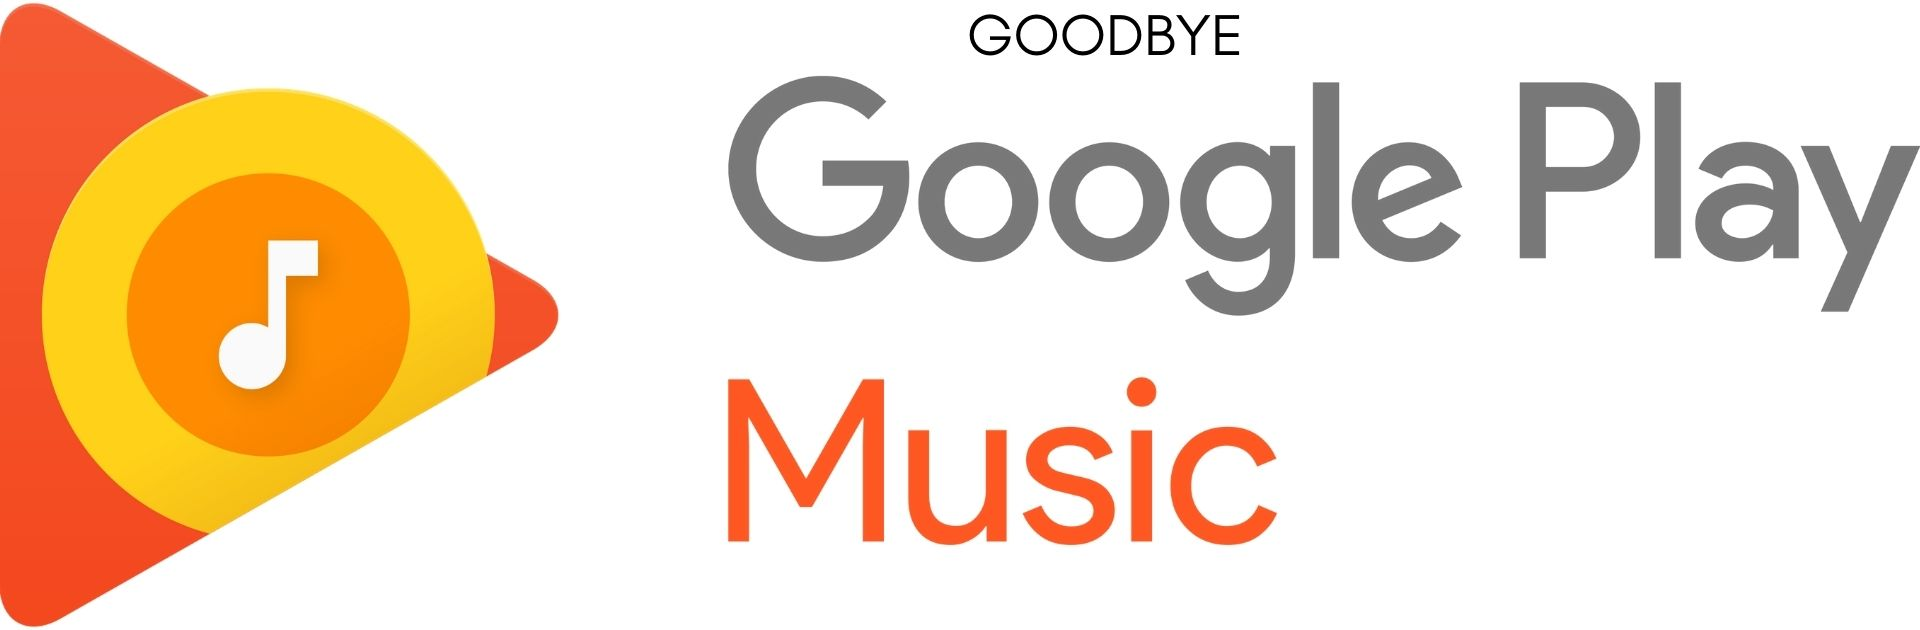 Goodbye Google Play Music